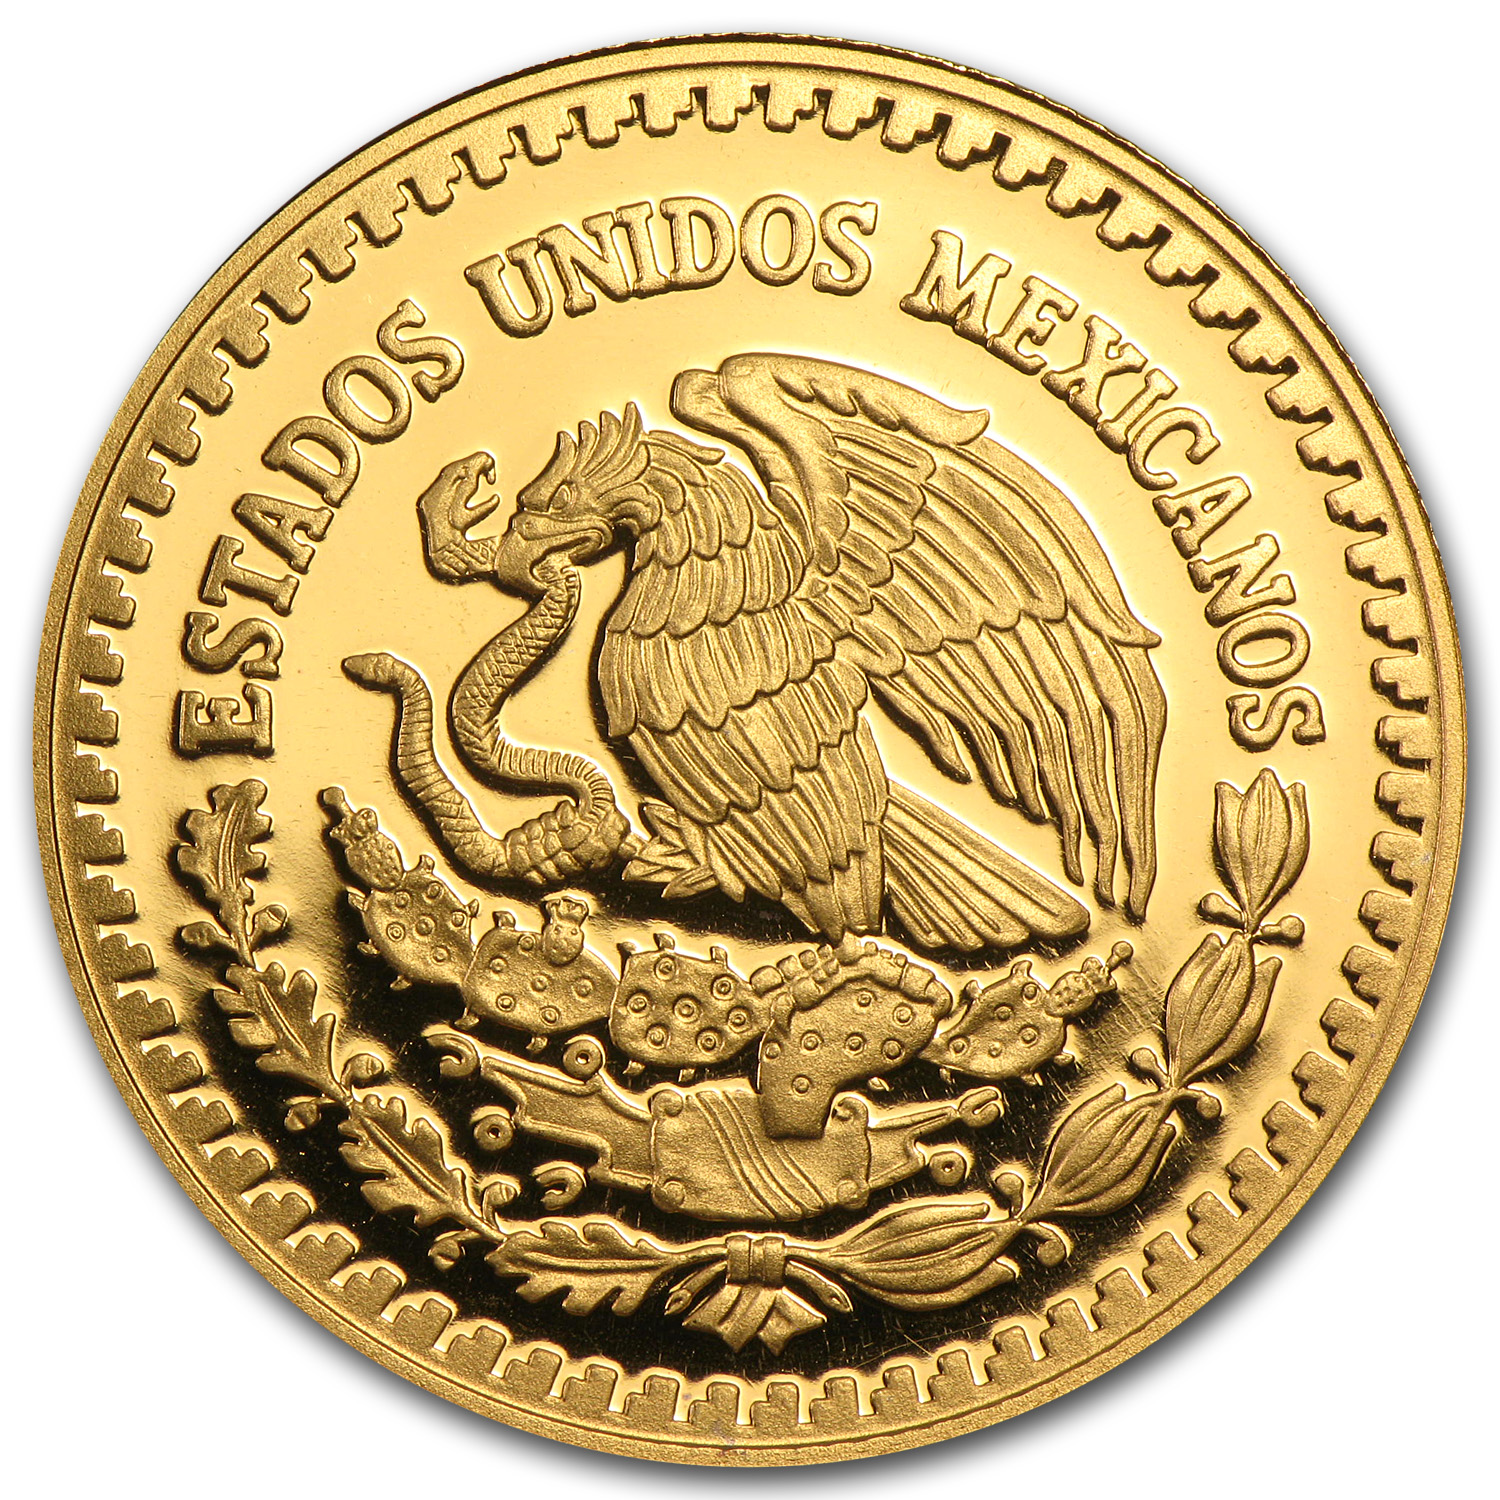 2008 Mexico 1/2 oz Proof Gold Libertad